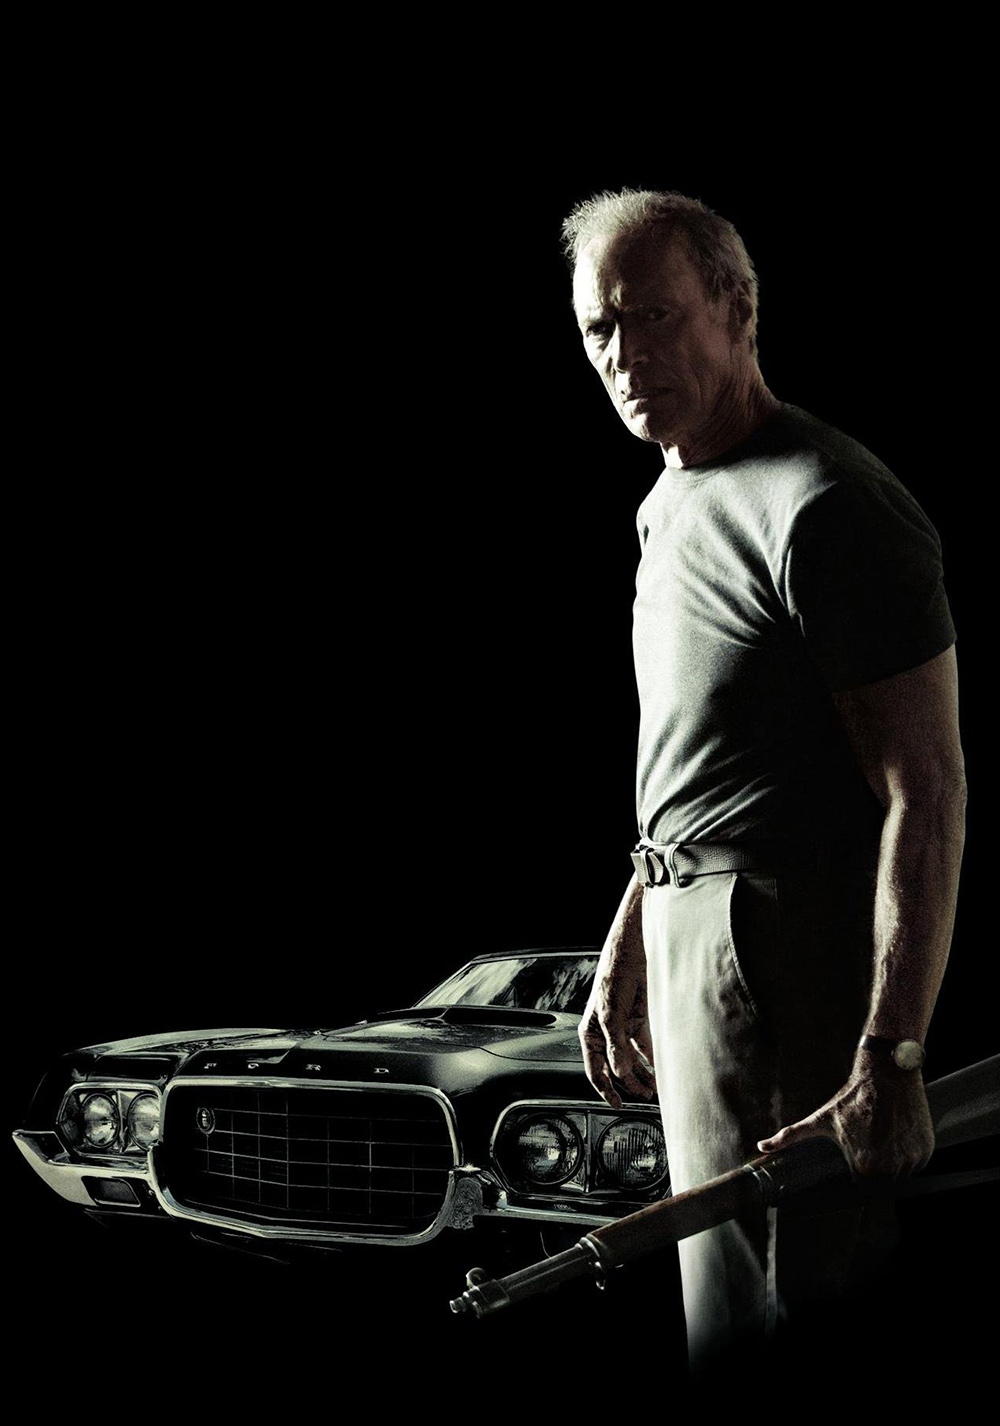 grand torino essay Published: mon, 5 dec 2016 gran torino, directed by clint eastwood, is a very moving and captivating drama it's a simple story about tolerance and cultural differences, but also one of hope, self-sacrifice, and unlikely friendships.